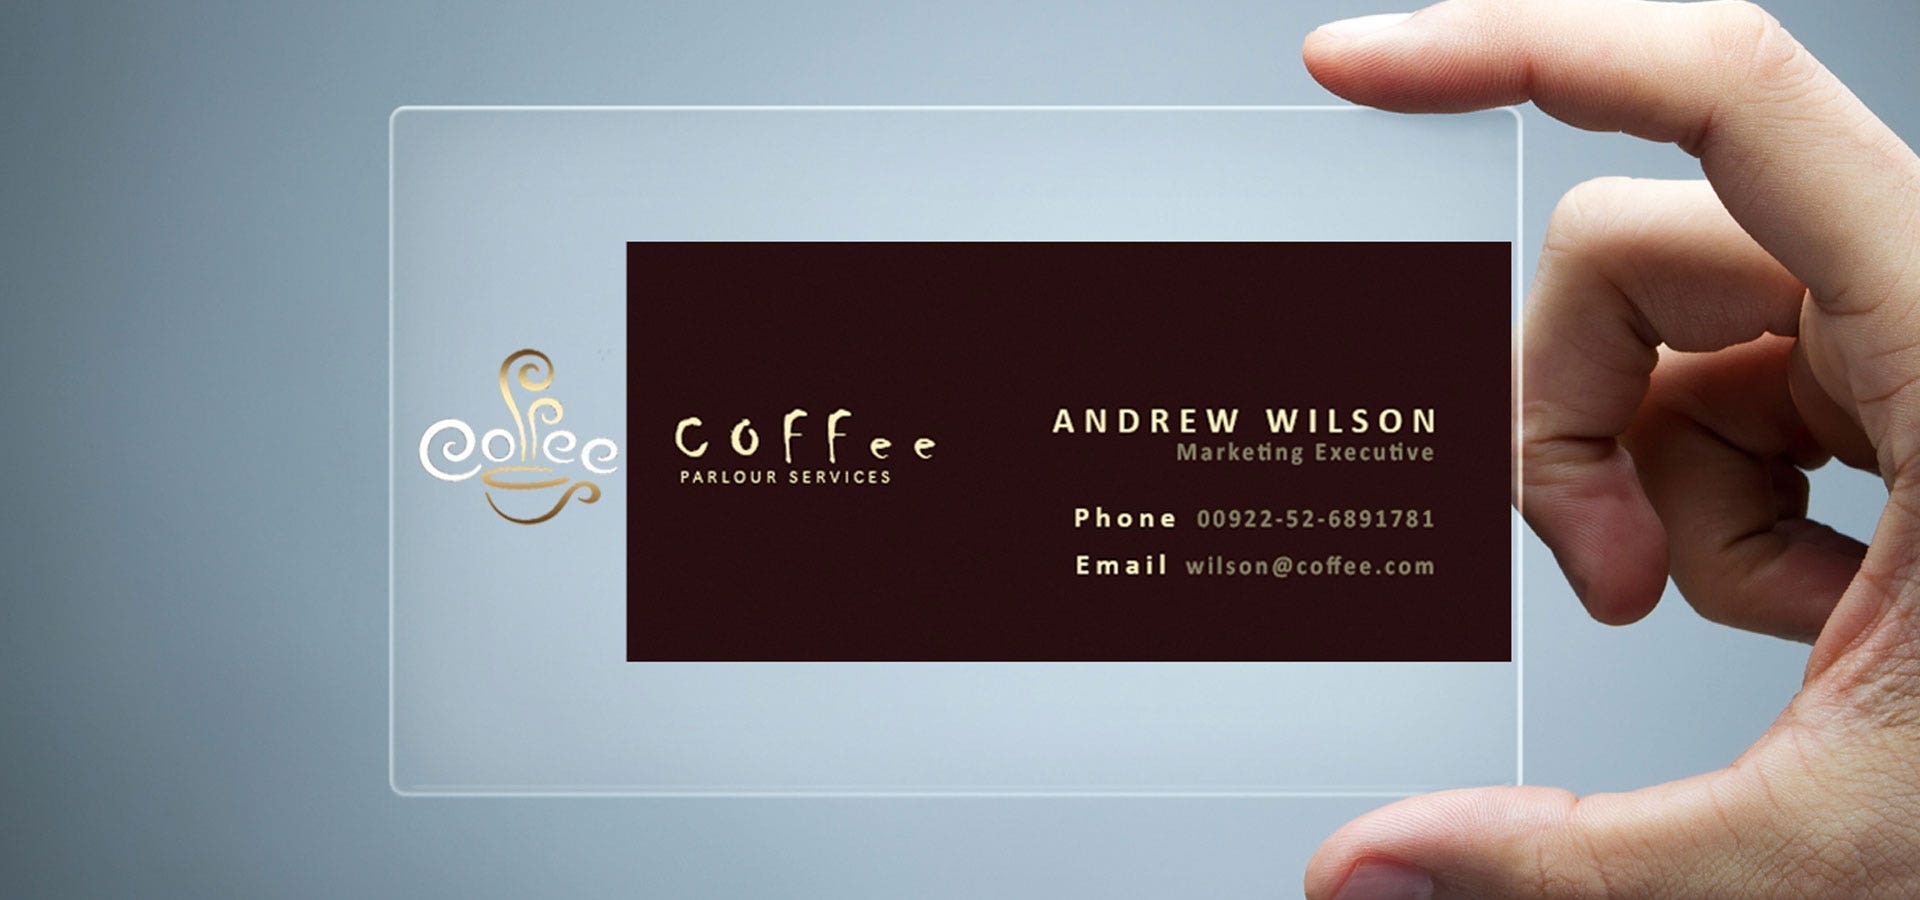 26 Transpa Business Card Templates